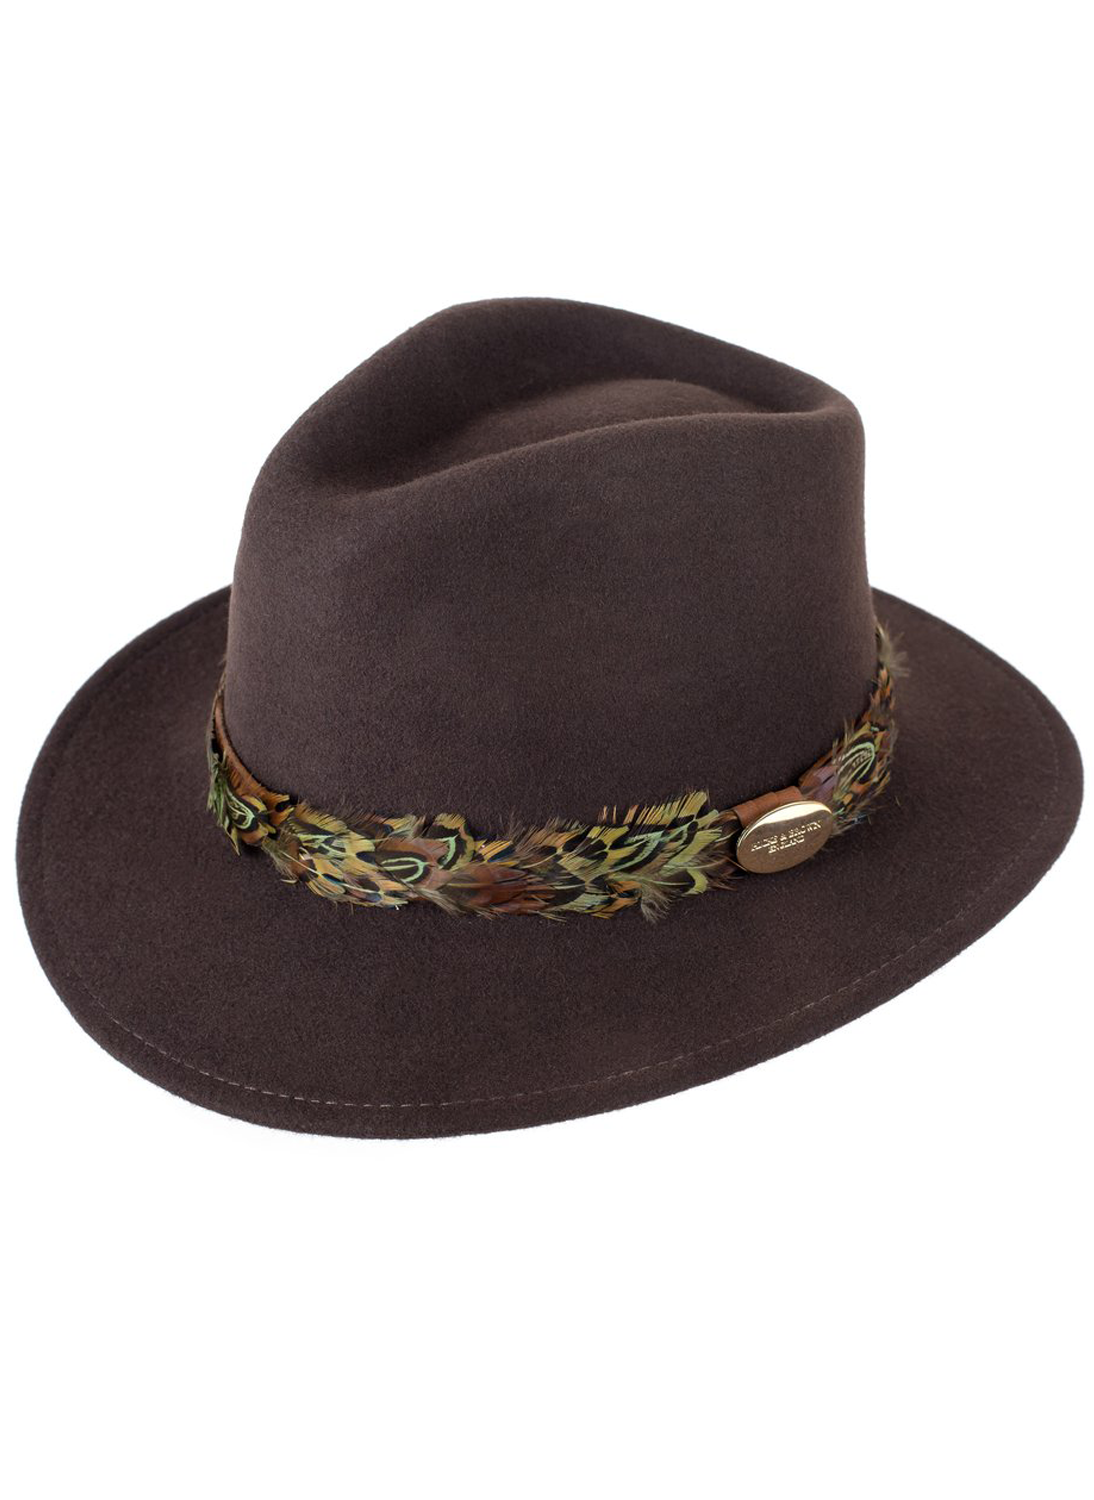 8260ce8d03a Hicks And Brown Ladies Hats - Parchment N Lead